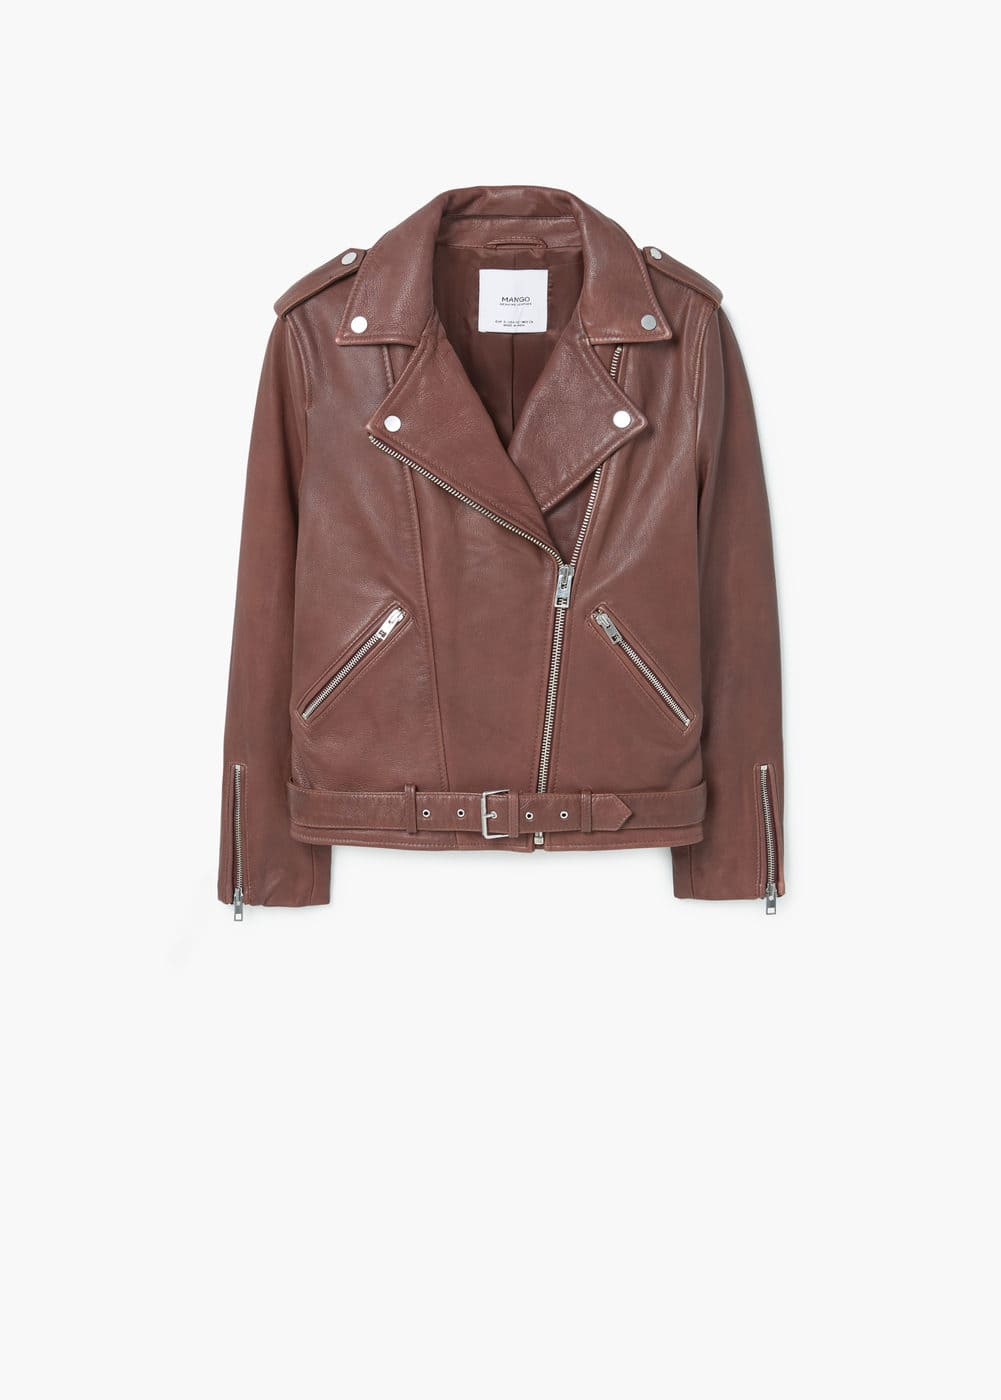 Leather Jackets we want to invest in